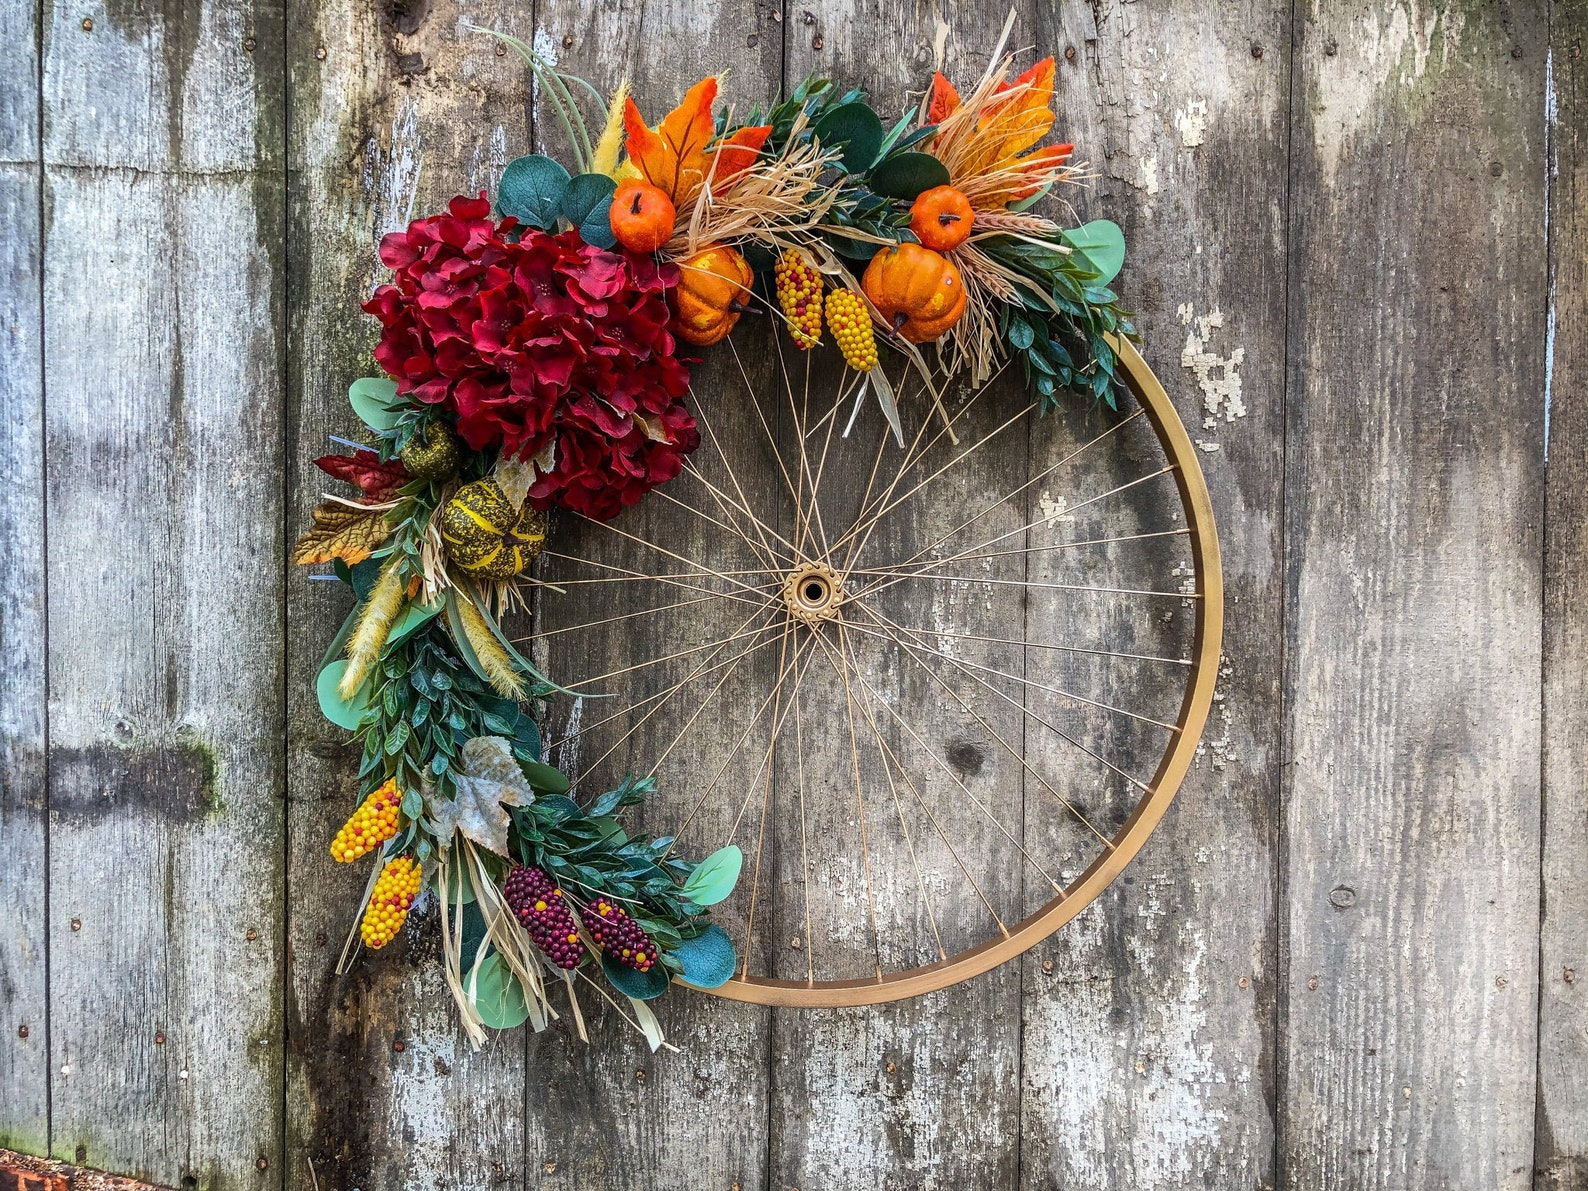 Fall Floral Bicycle Wheel Wreaths